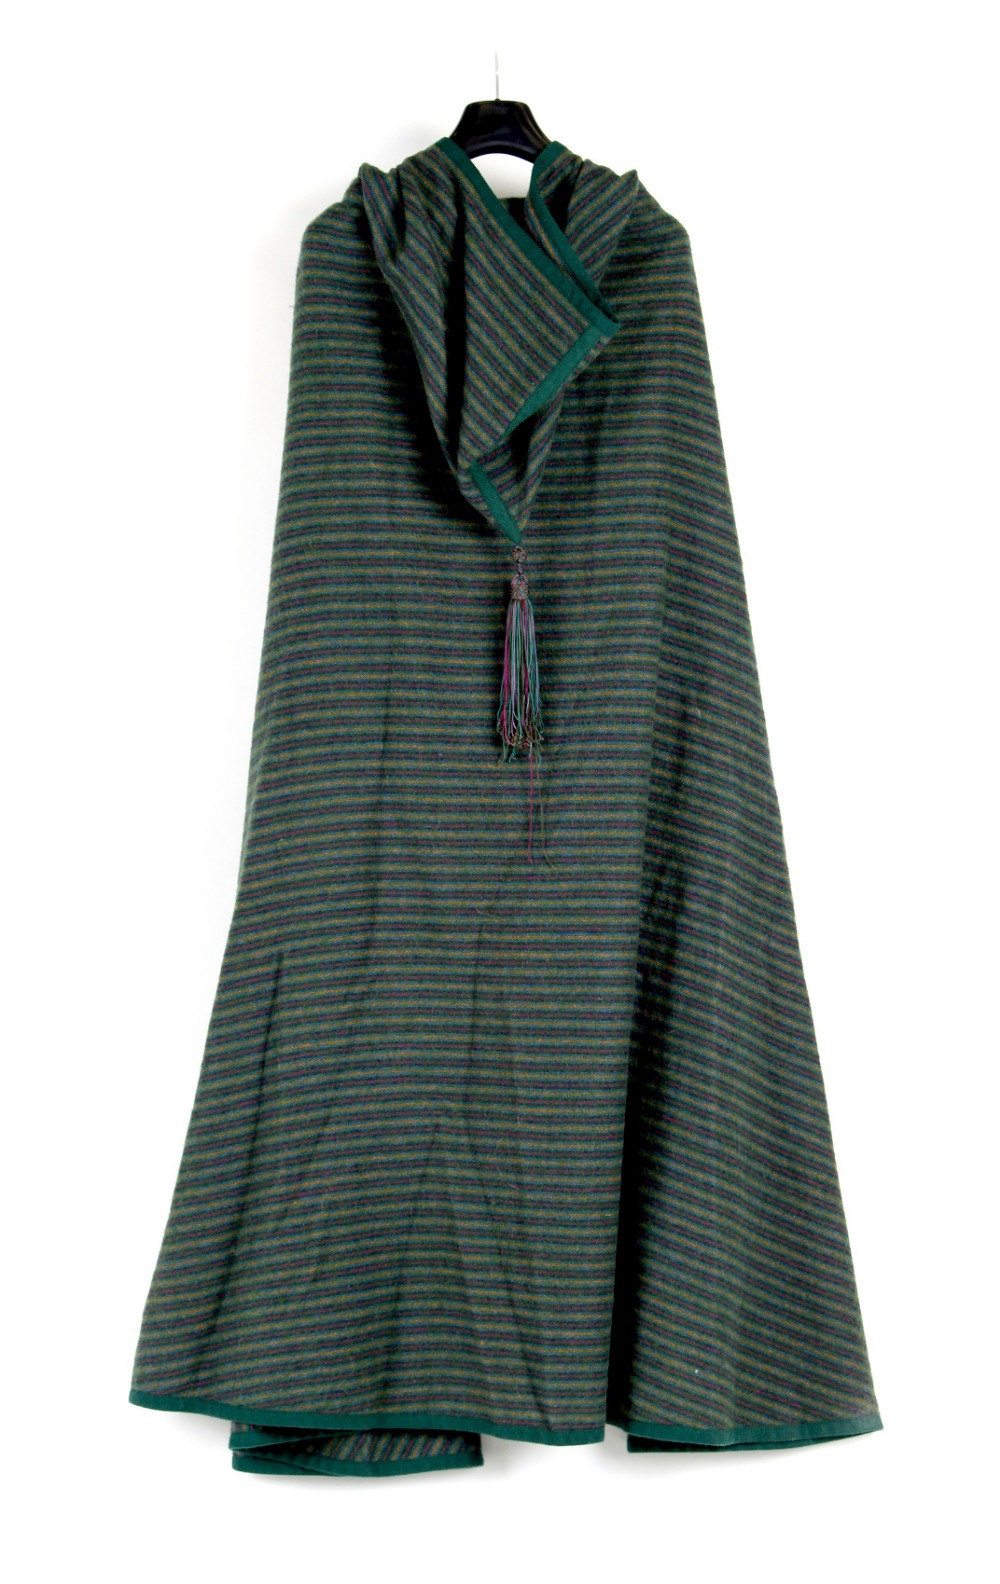 Property of a deceased estate - an Yves Saint Laurent Rive Gauche hooded cape, wool, green, blue,